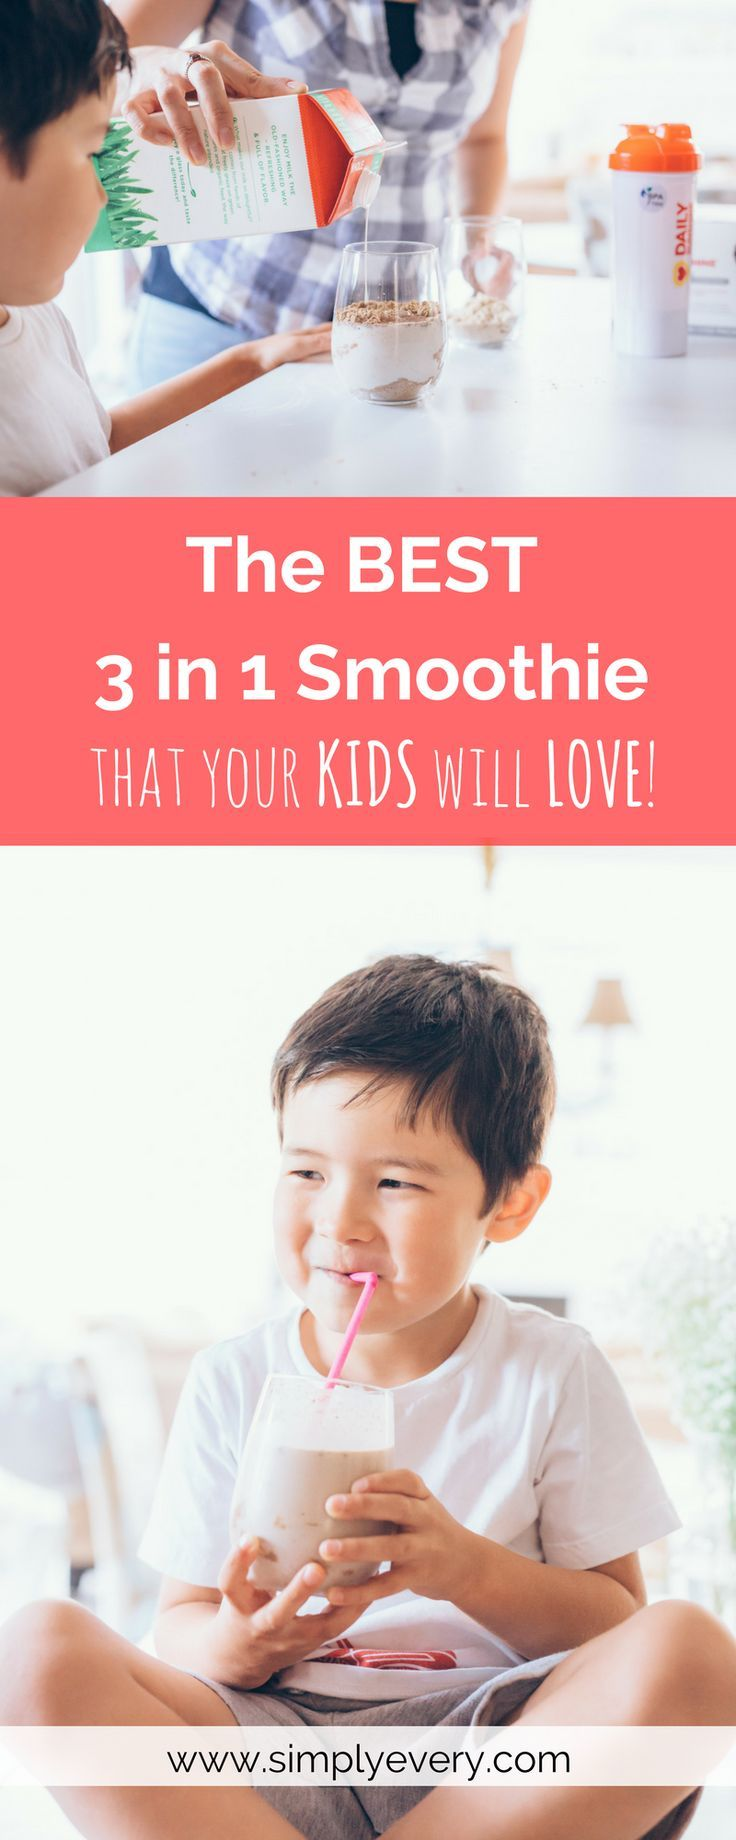 The BEST 3-in-1 Smoothie that Your Kids will LOVE!, kids food, food for kids, kids snack, smoothie, good snacks, plant based snacks, eat healthy, healthy snacks